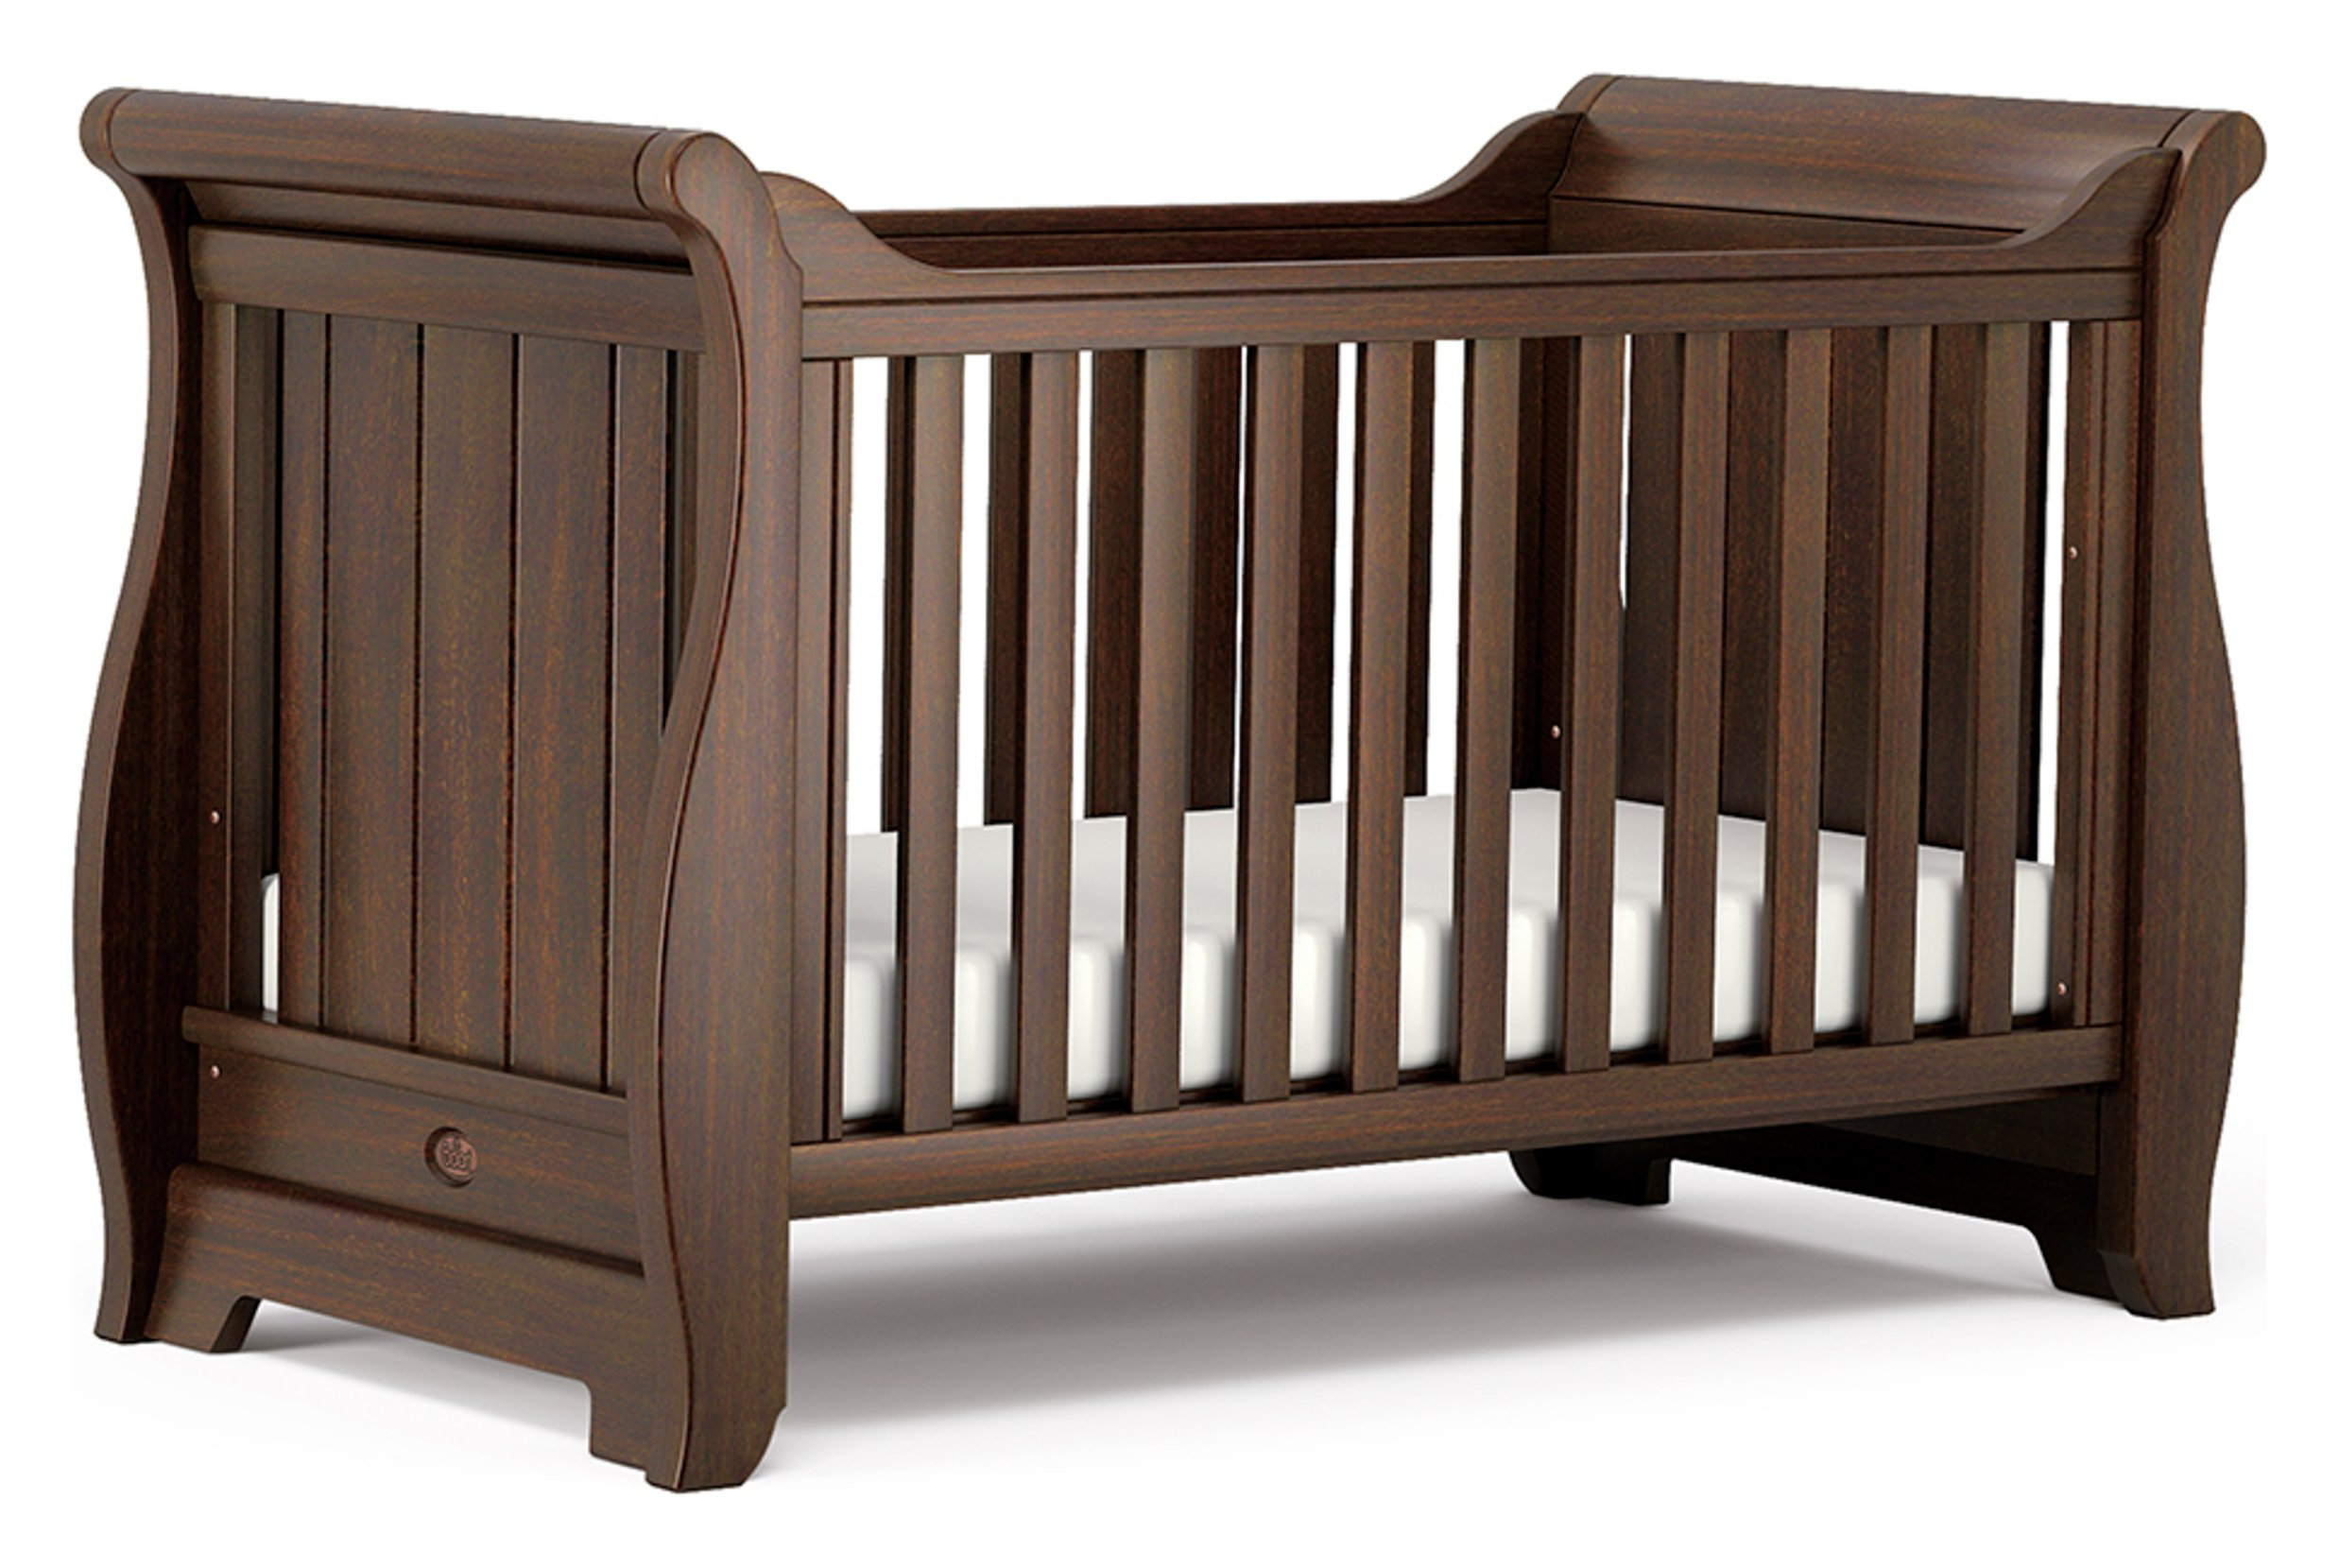 Image of Sleigh Cot Bed - English Oak